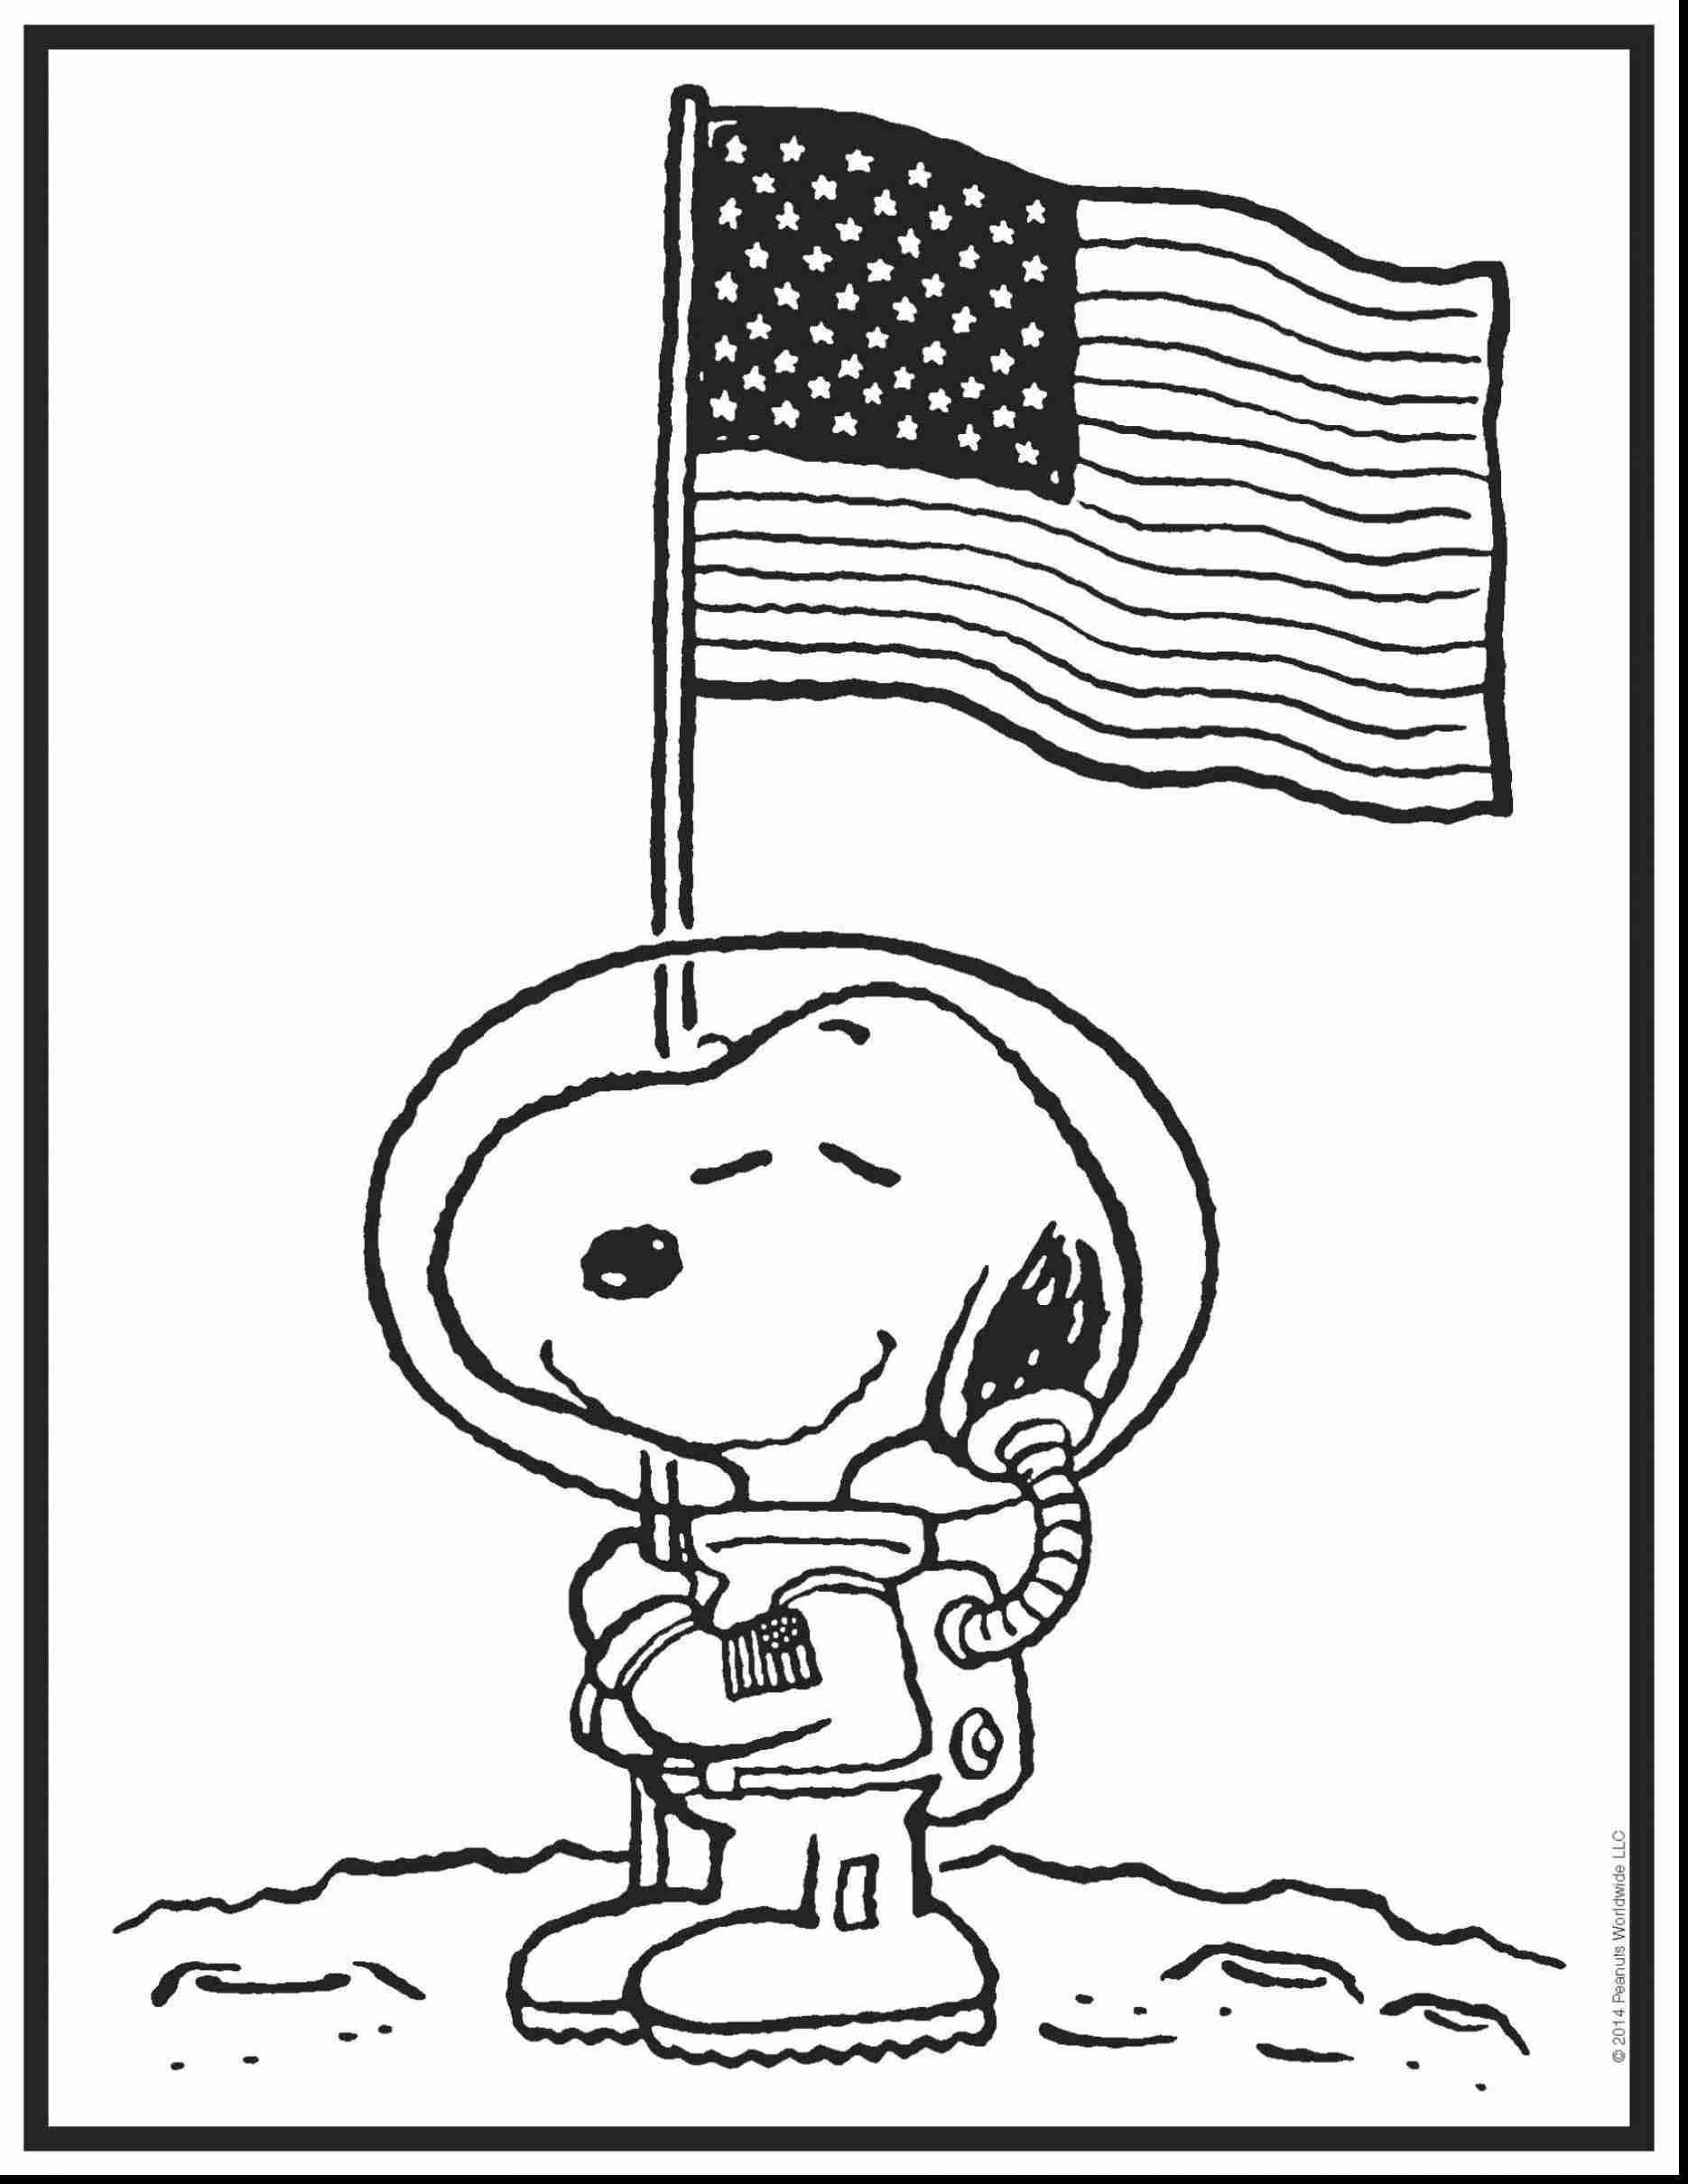 Peanuts Coloring Pages Coloring Page Drawing Snoopy Colorings